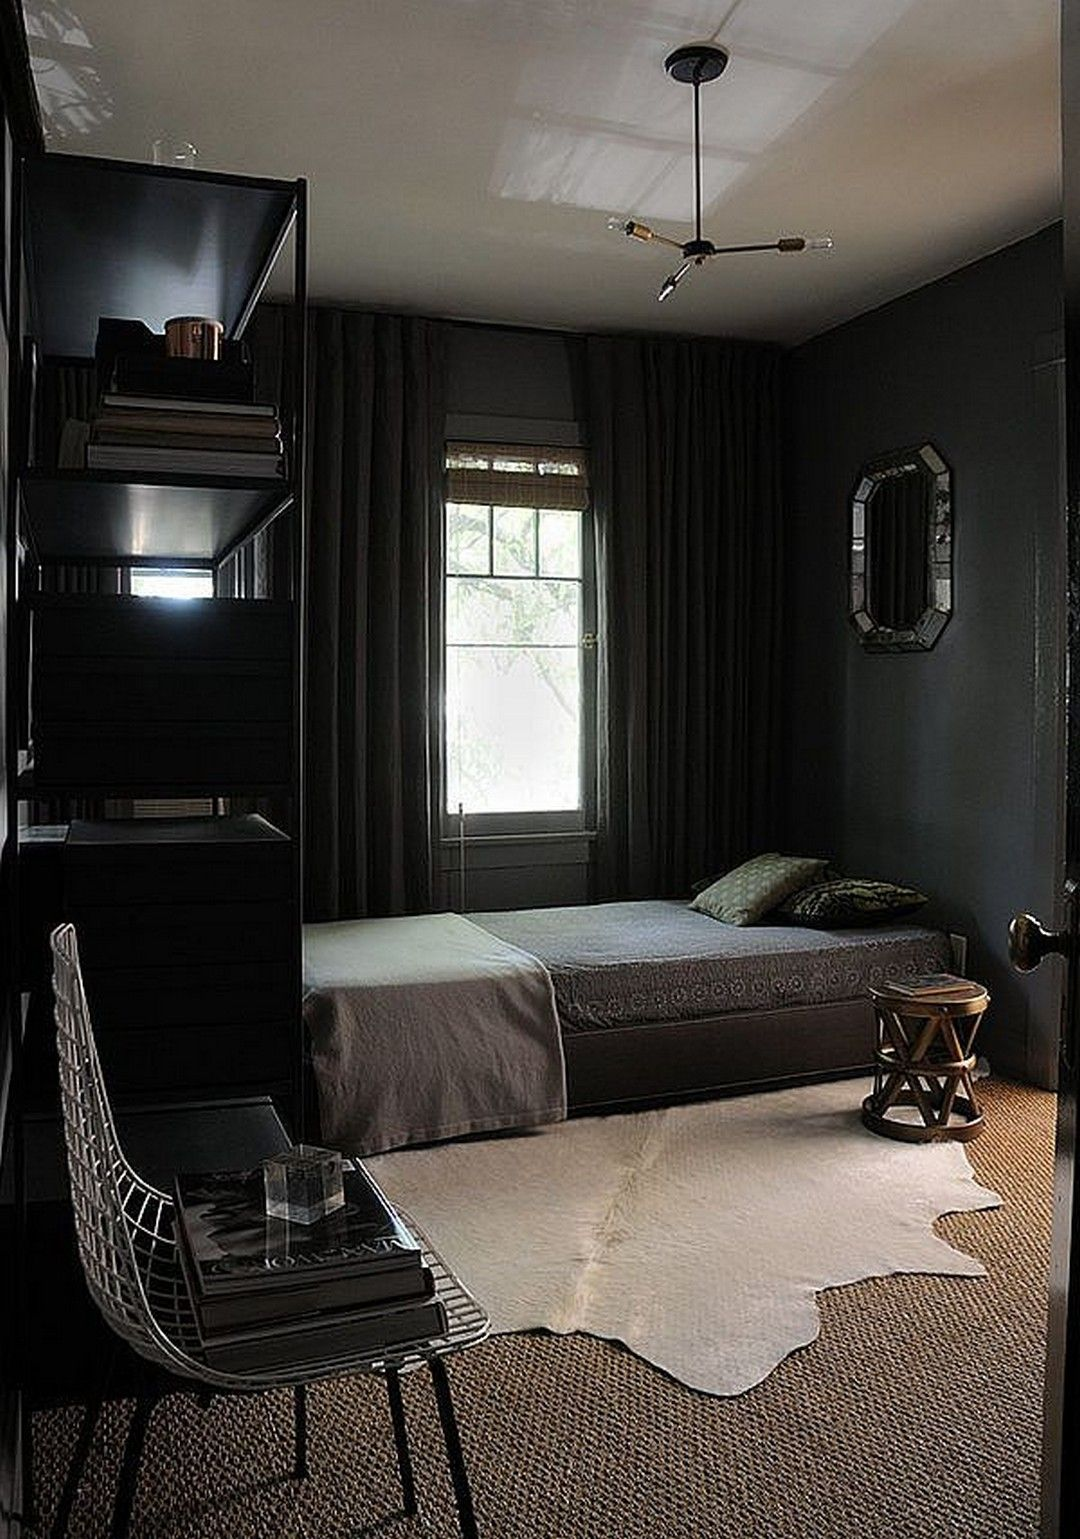 32 The Colors Used In An Interior Can Make Or Break The